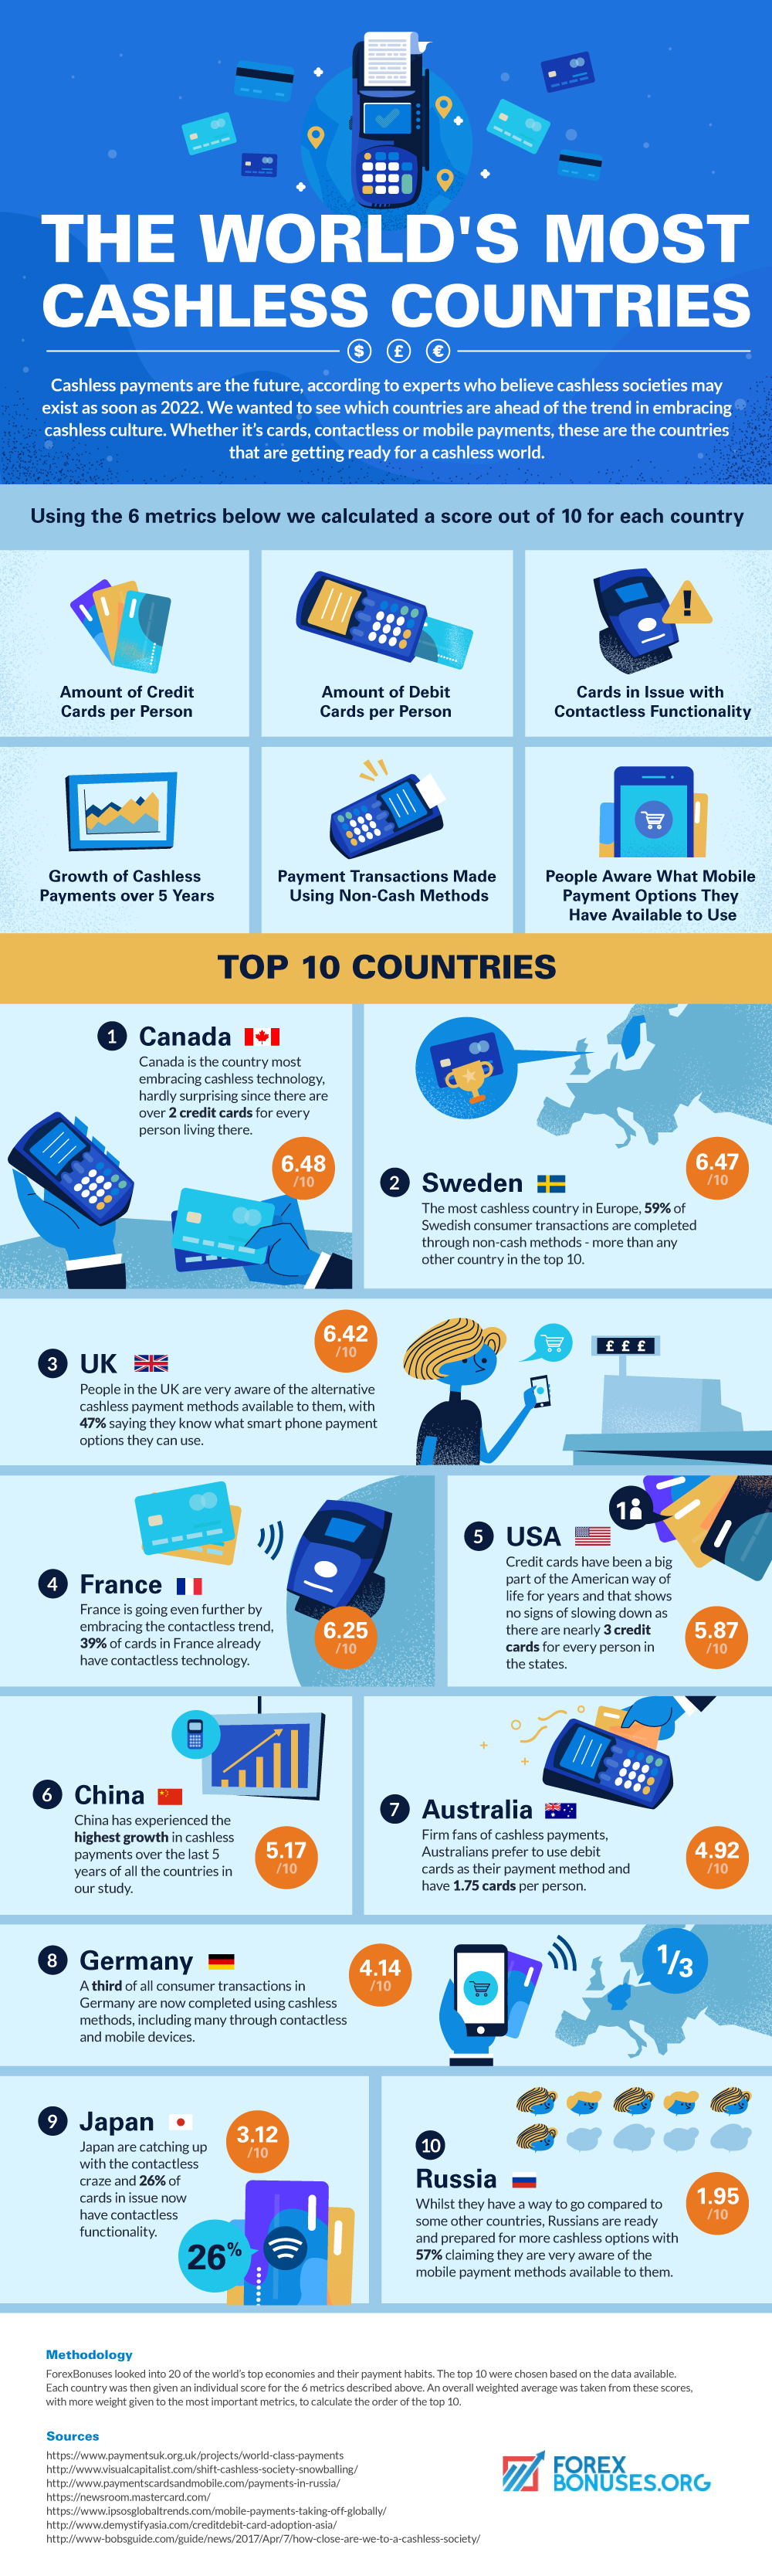 What are the worlds most cashless countries?